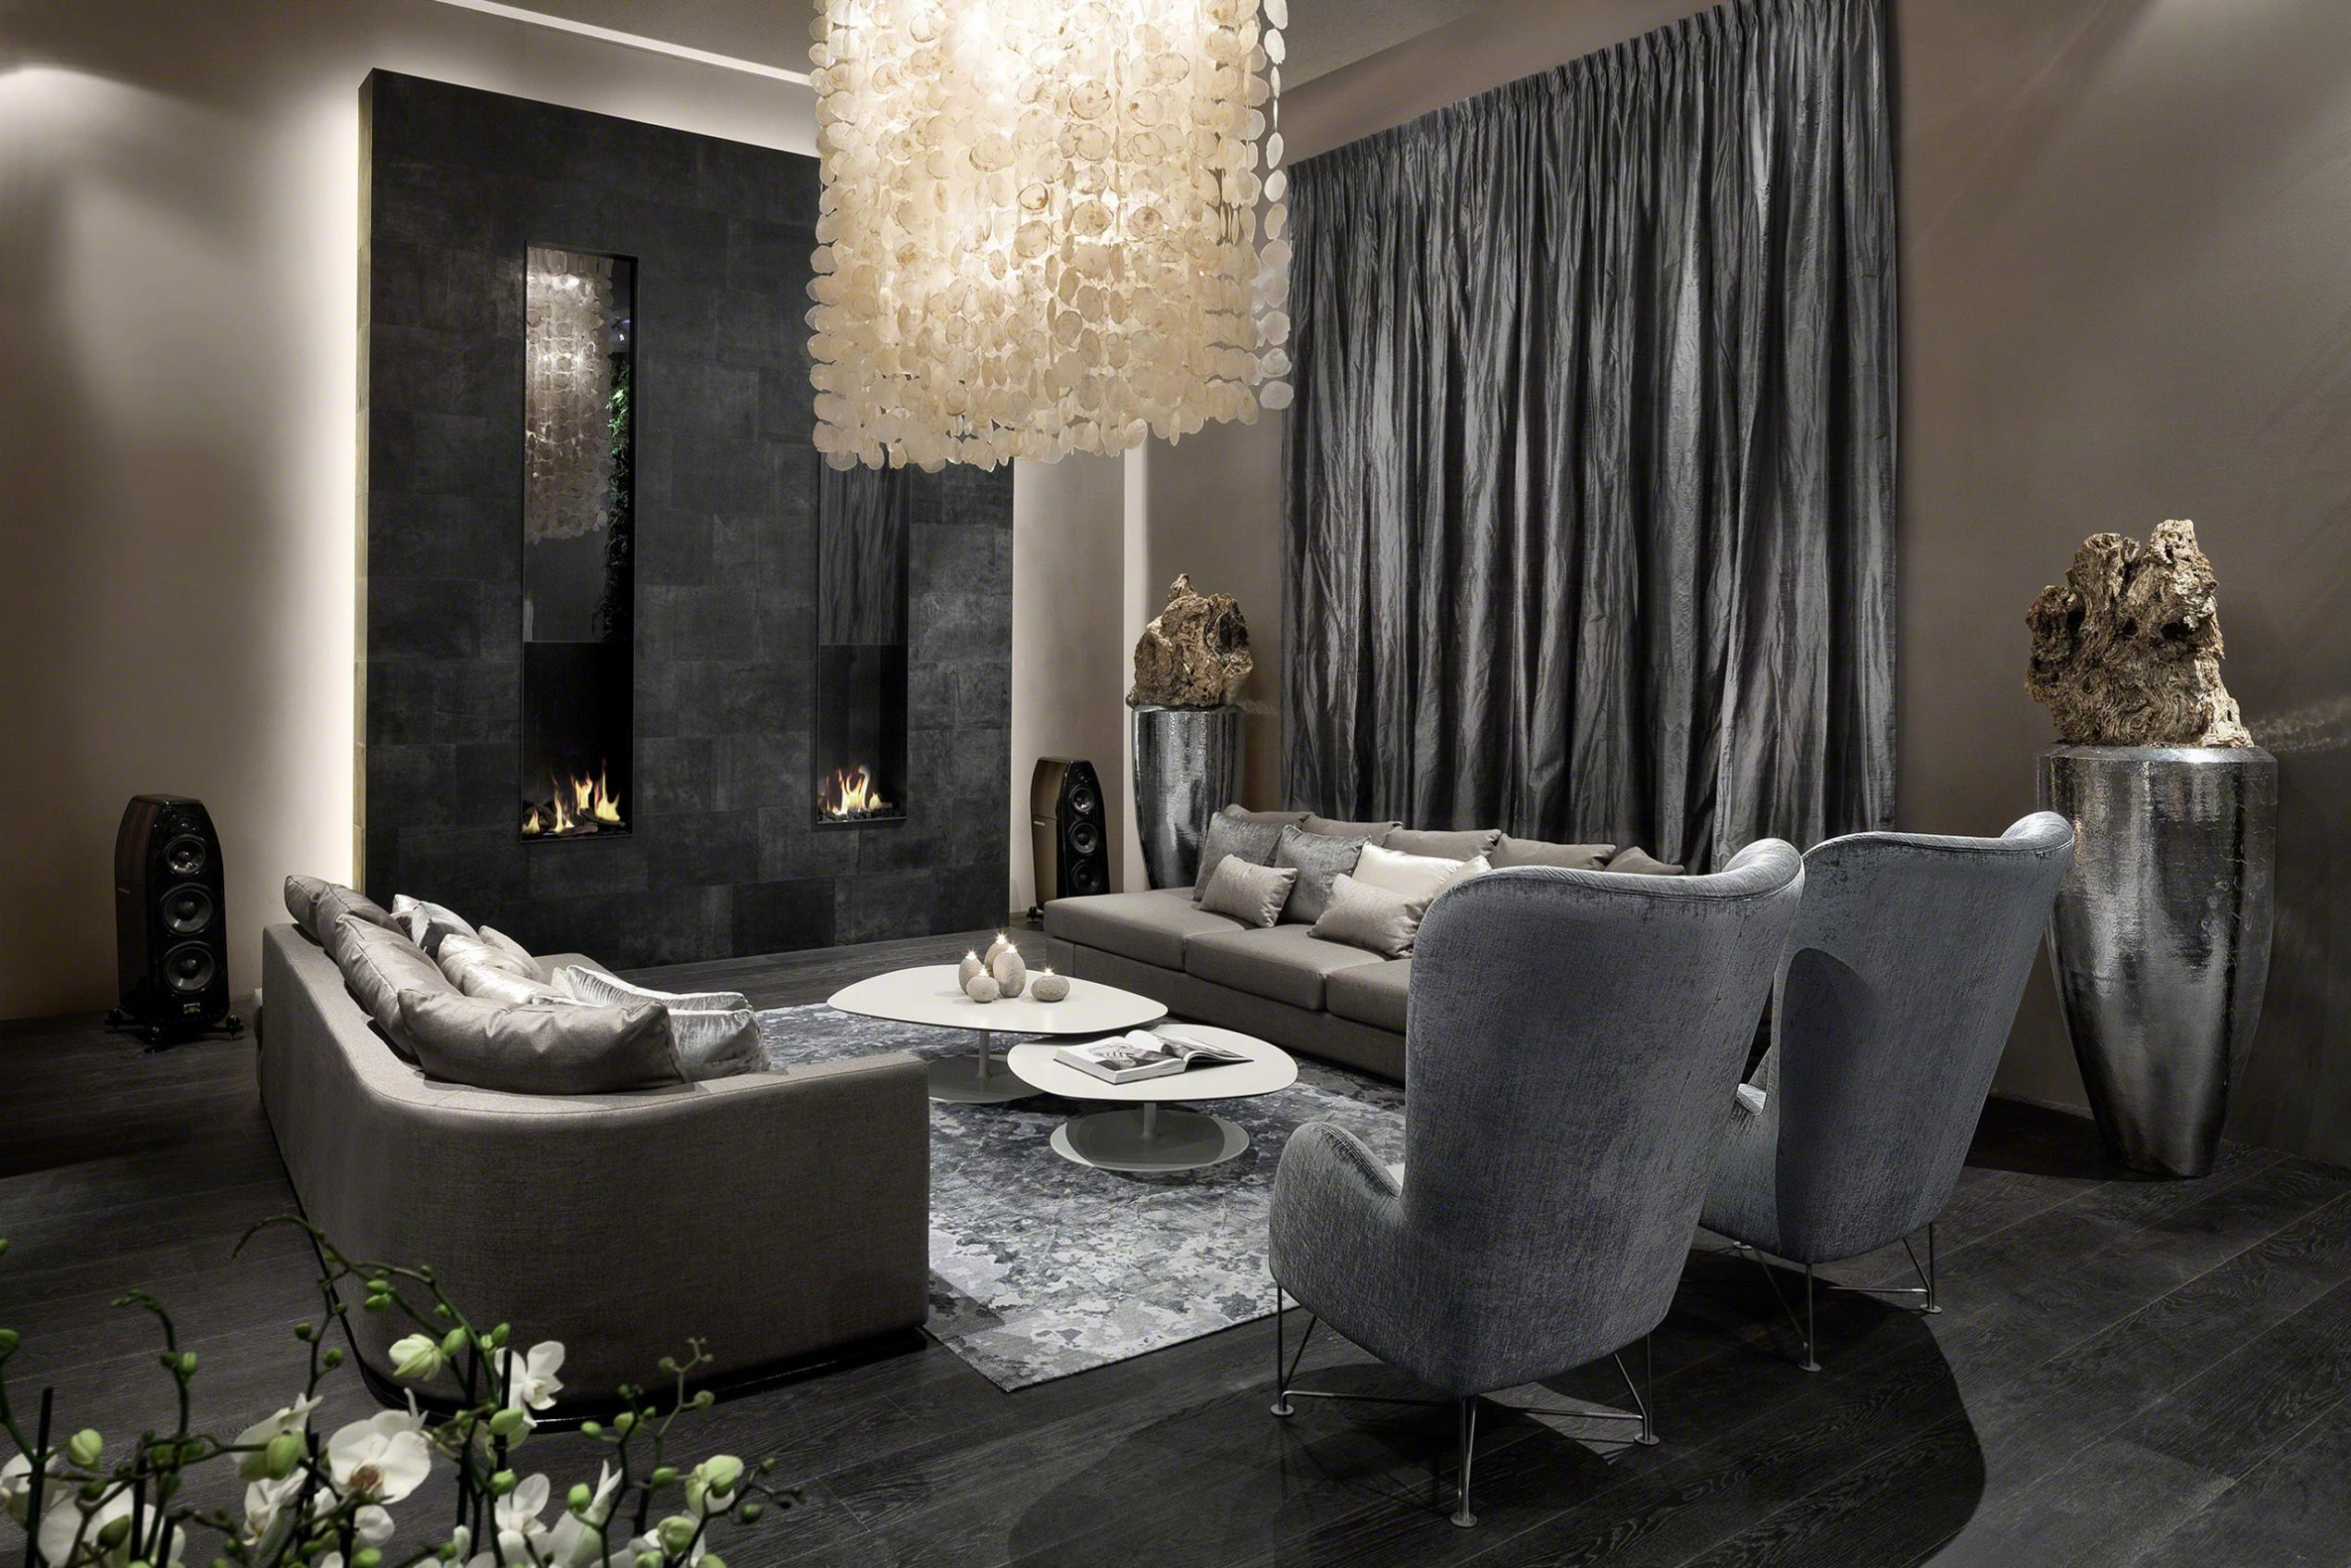 Elegance small modern living room interior using unique paper hanging lamp also grey sofa plus black concrete wall fireplace luxurious interior decor for